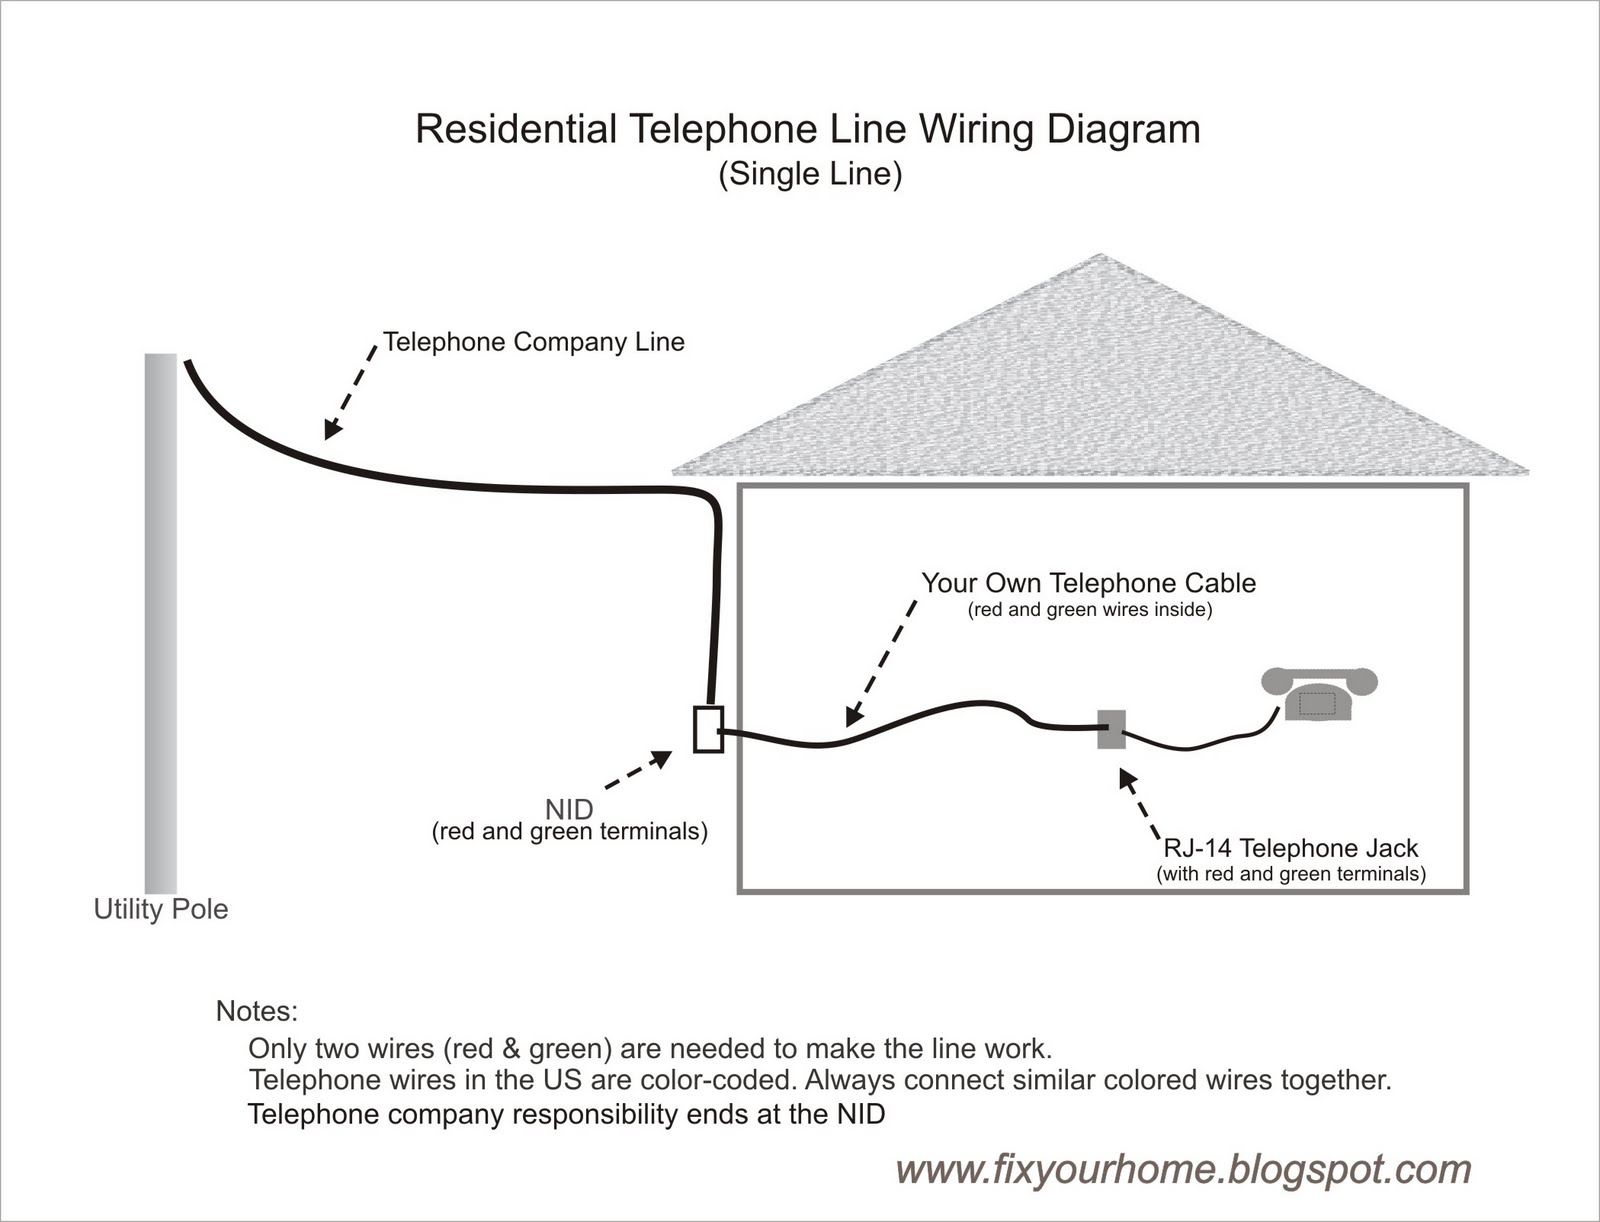 telephone phone line wiring diagram fix your home: how to wire your own telephone line